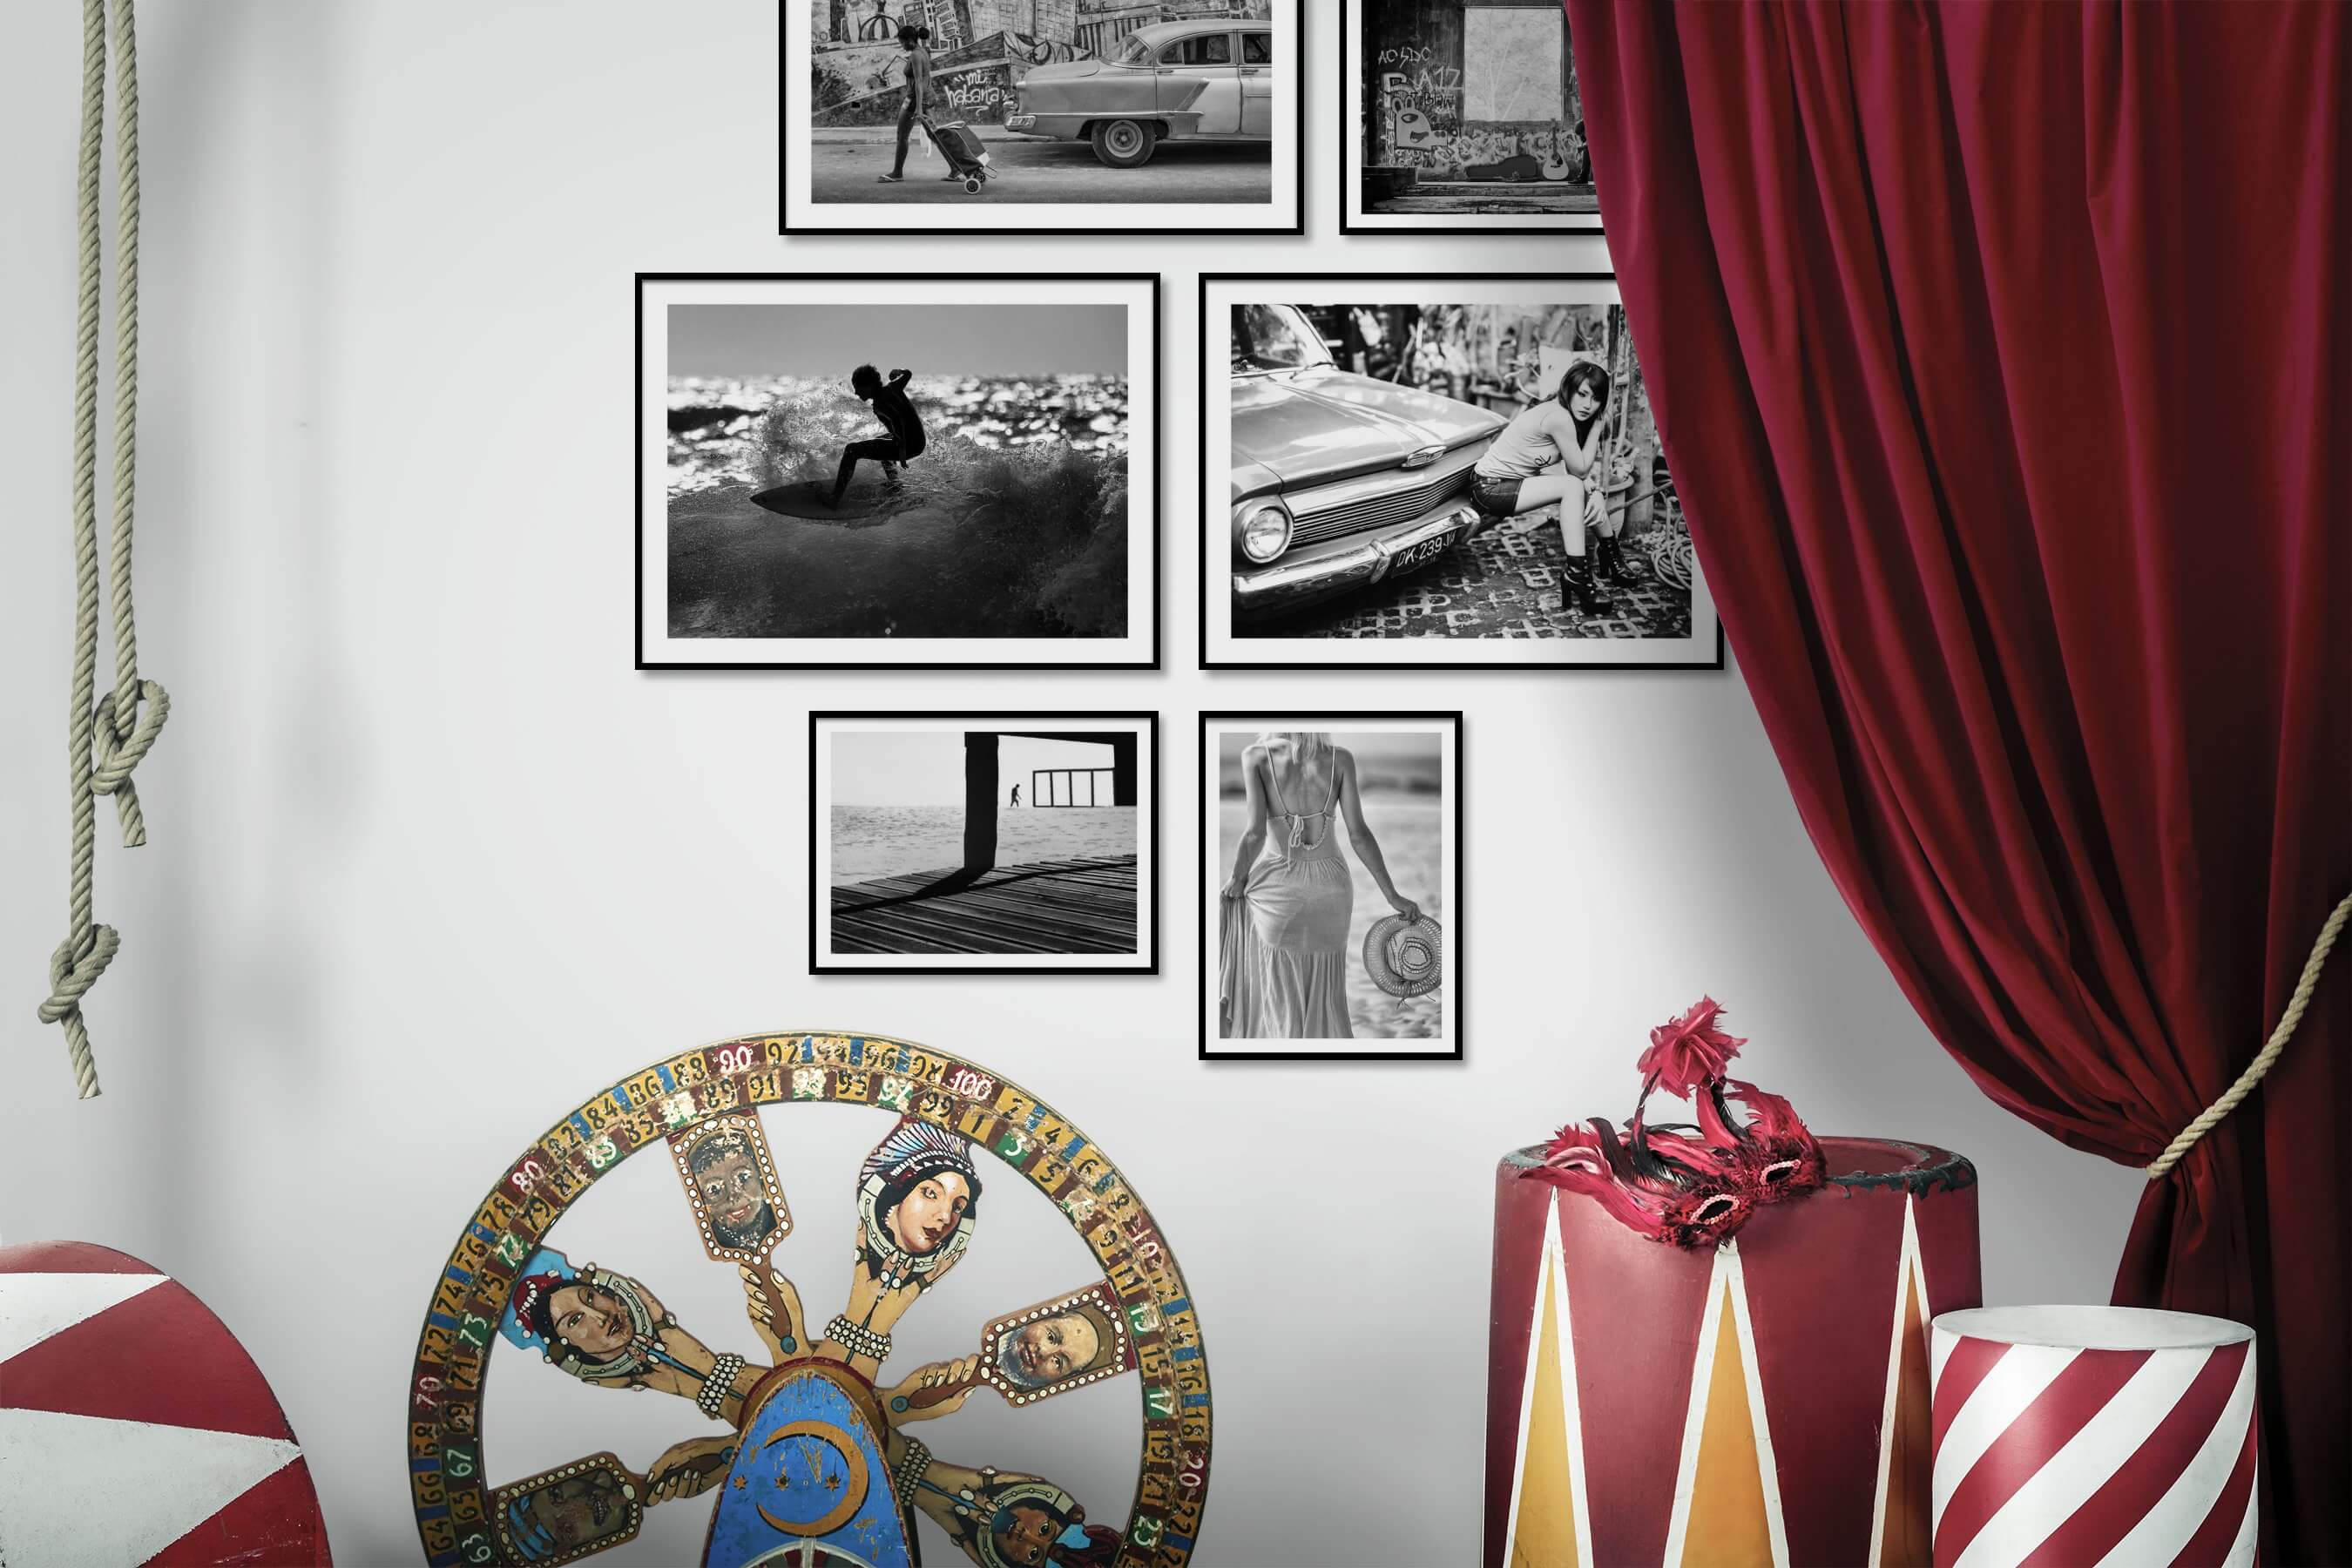 Gallery wall idea with six framed pictures arranged on a wall depicting Black & White, City Life, Vintage, Beach & Water, Fashion & Beauty, and For the Moderate